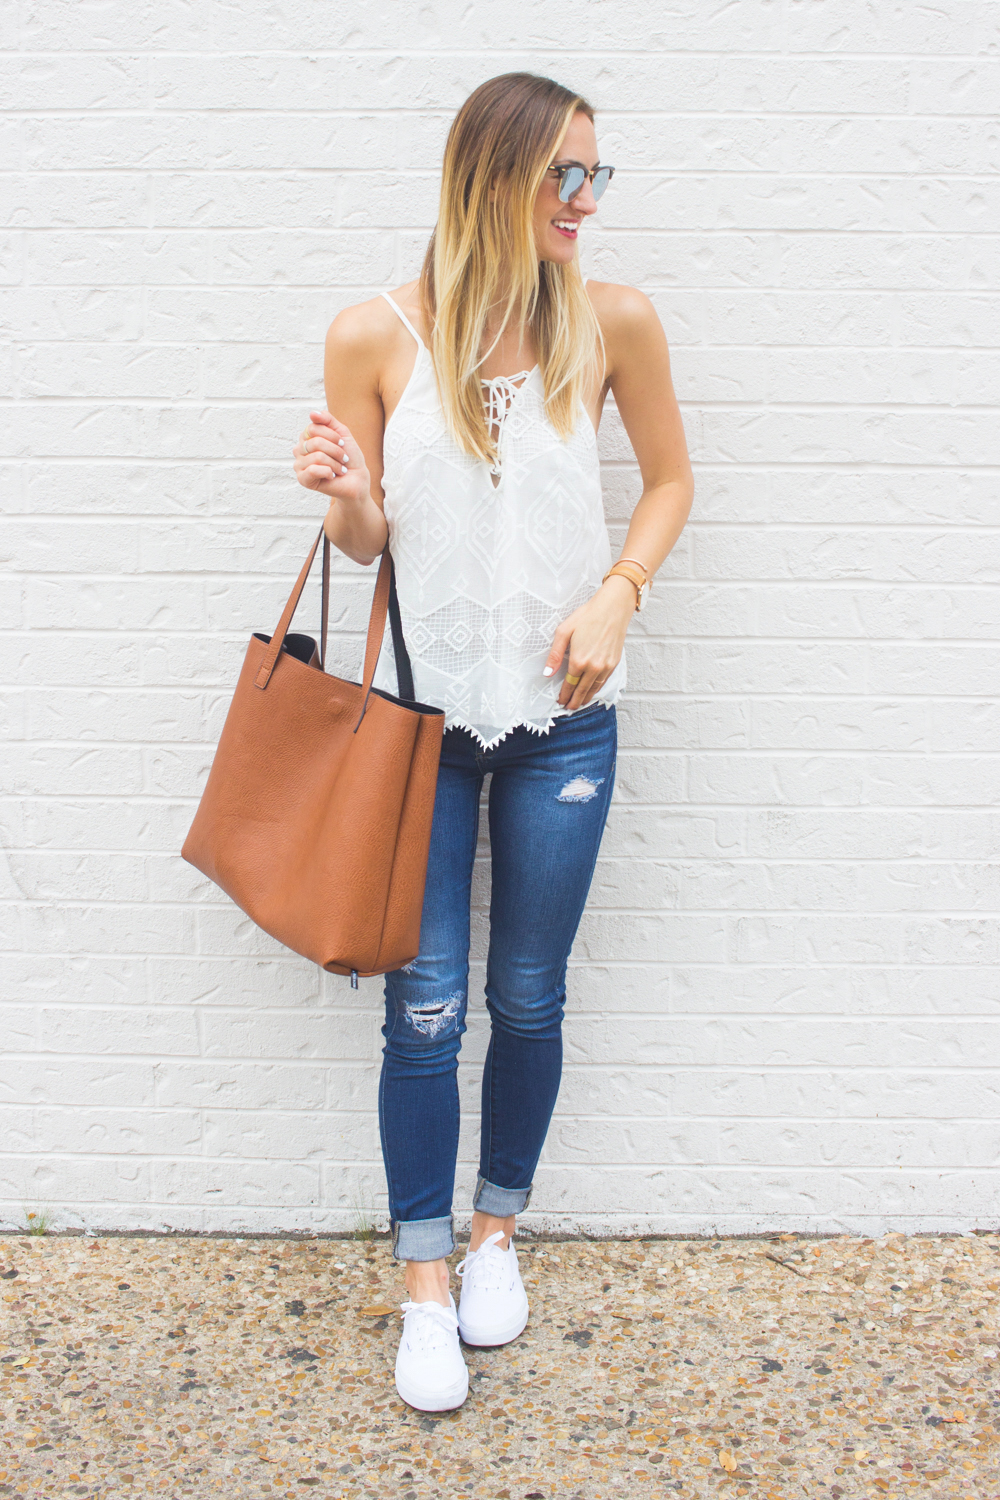 livvyland-blog-olivia-watson-austin-texas-fashion-blogger-nordstrom-vans-white-sneakers-summer-outfit-3